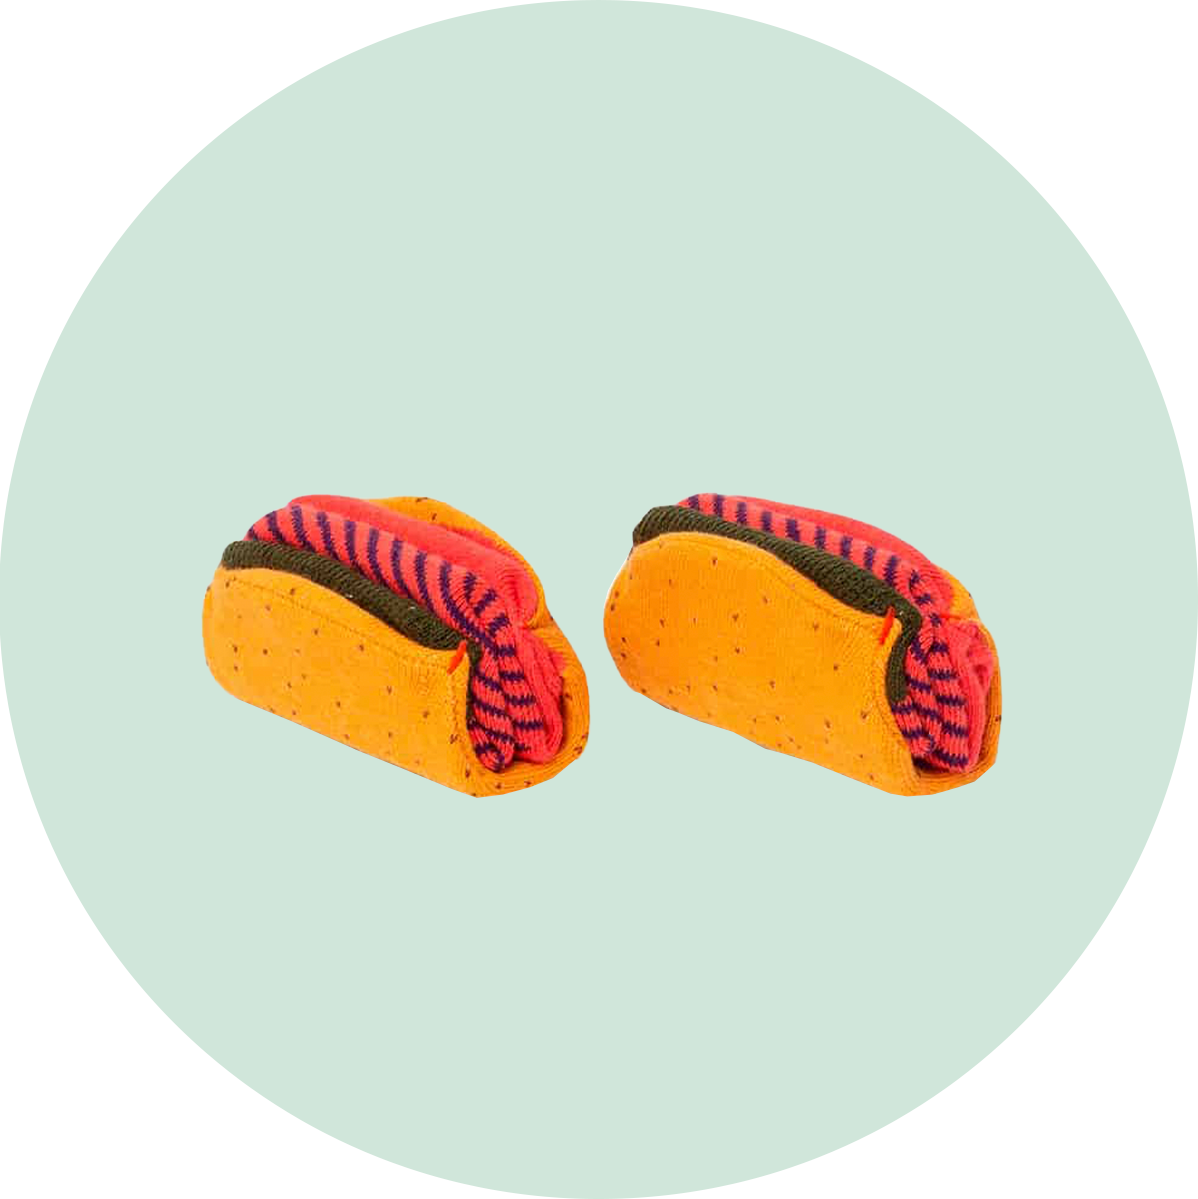 DOIY Design Taco Socks